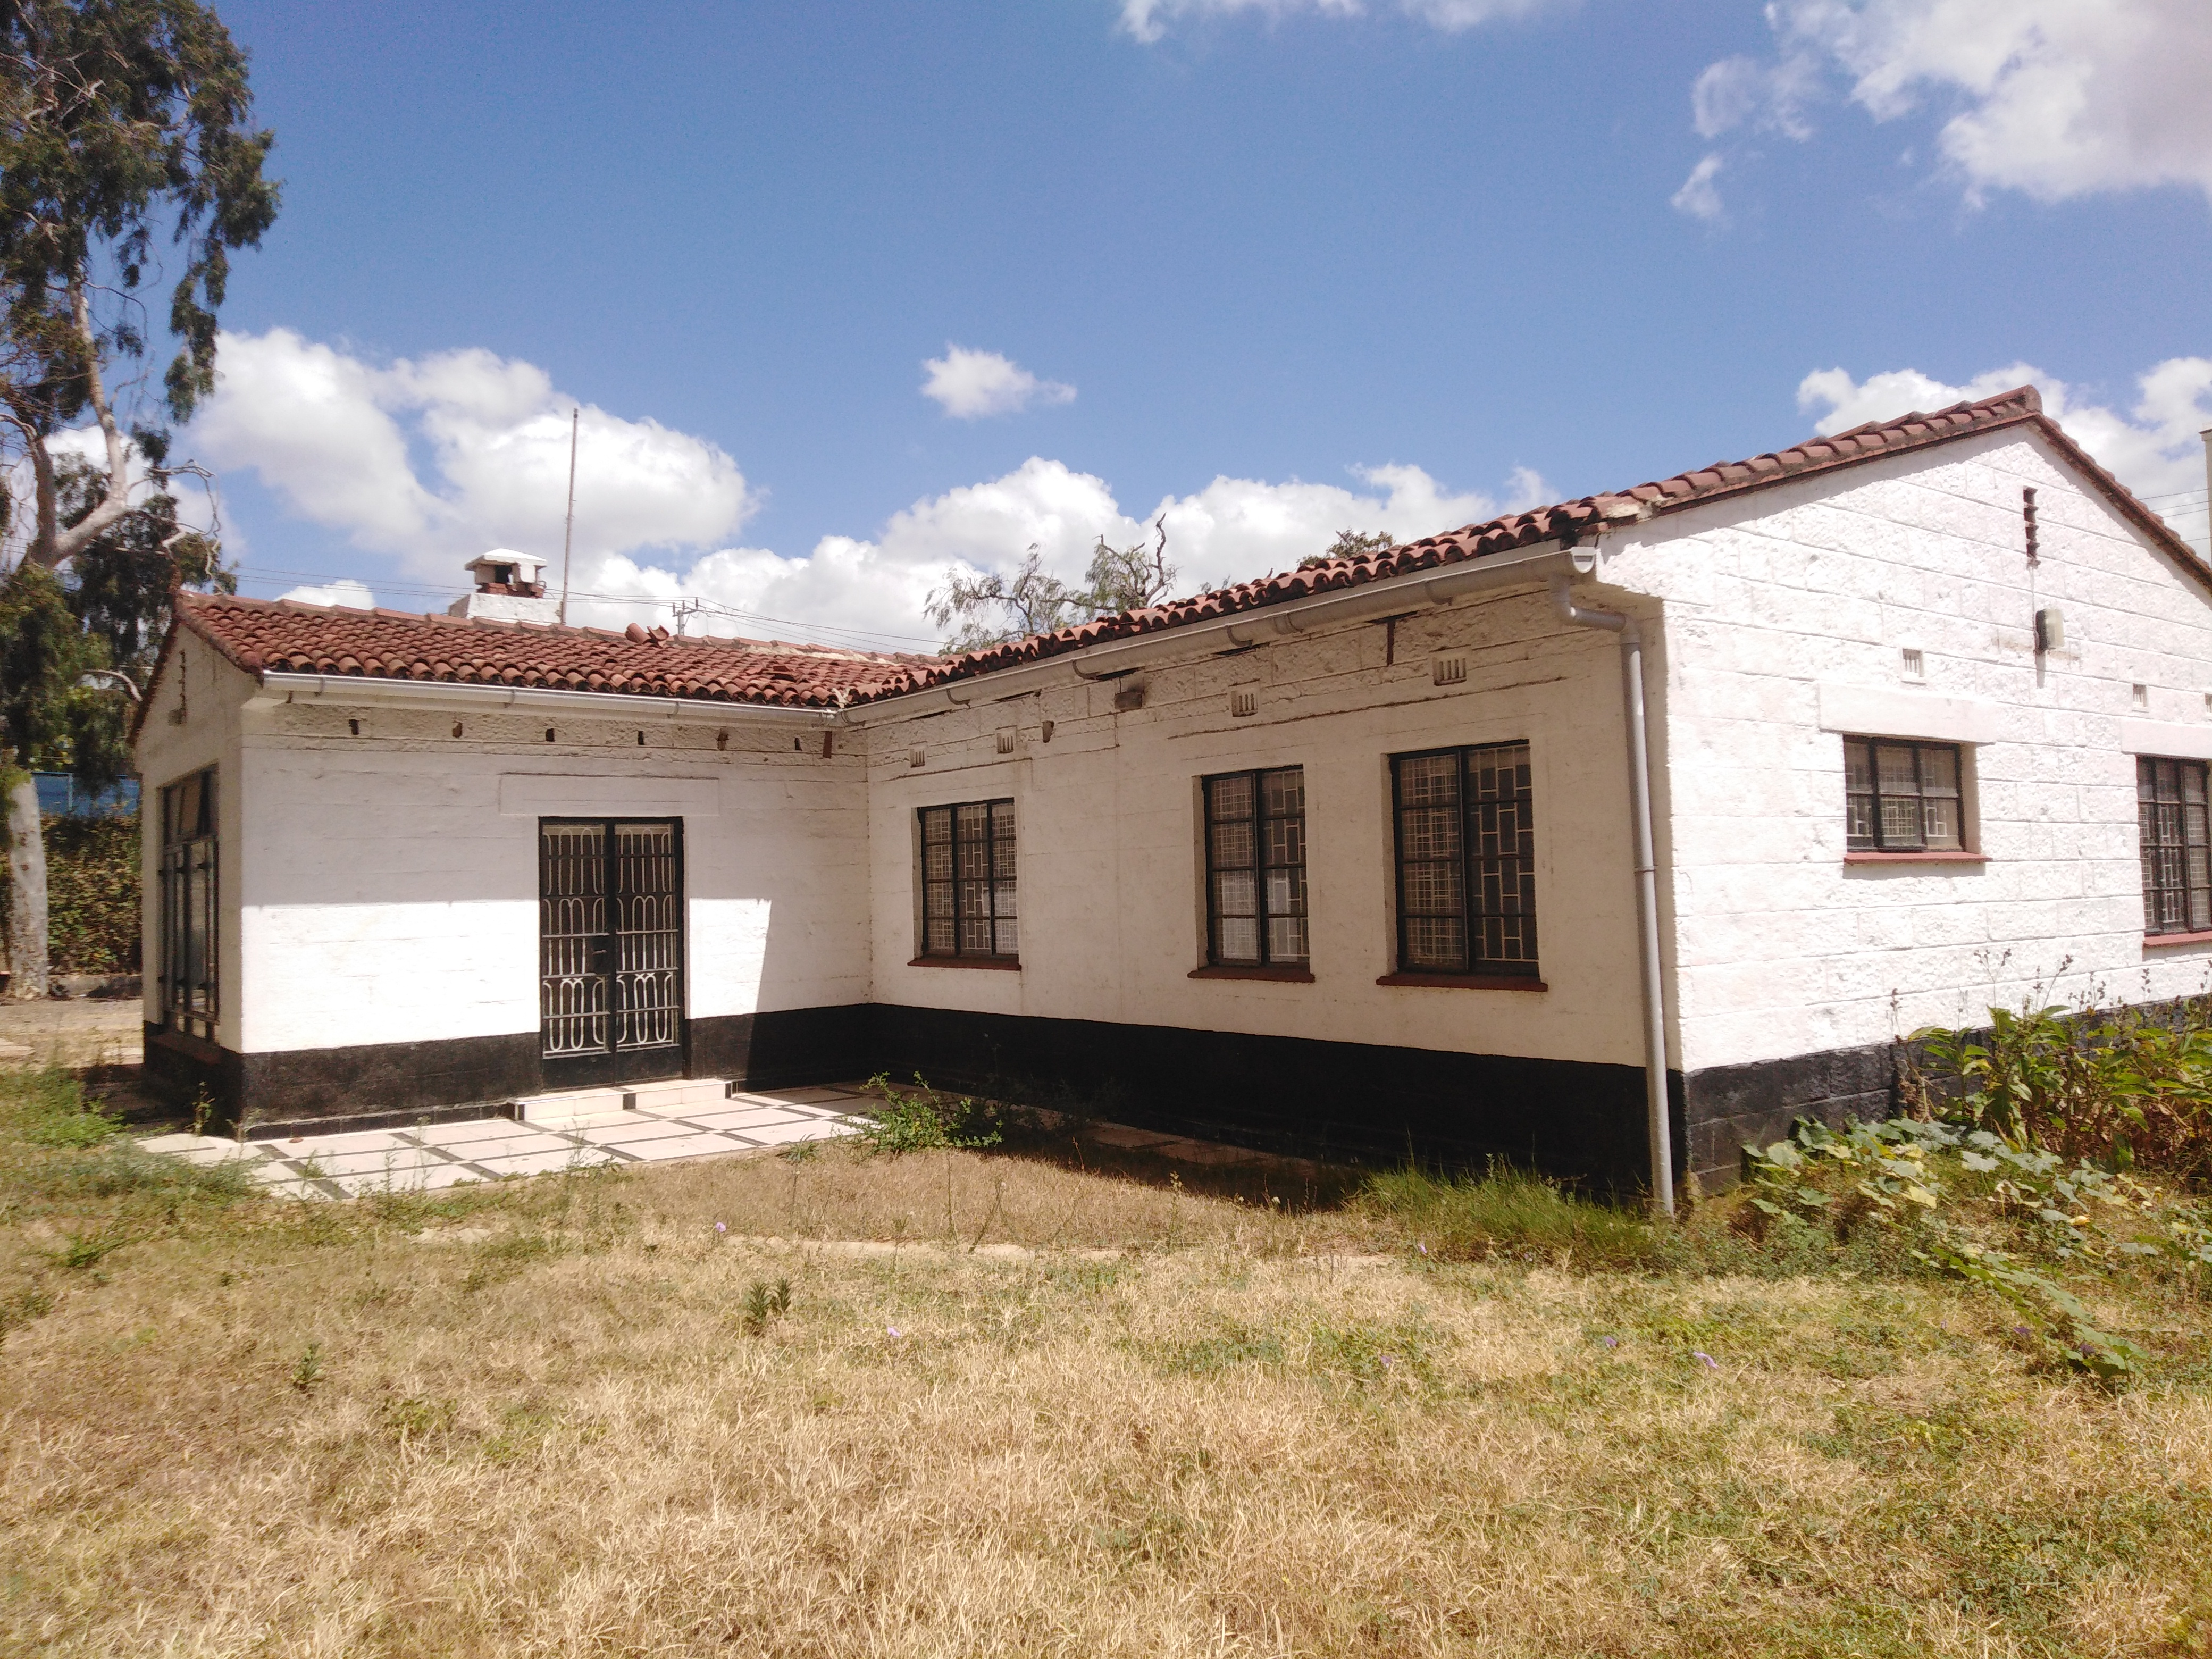 Commercial house for lease in Kilimani